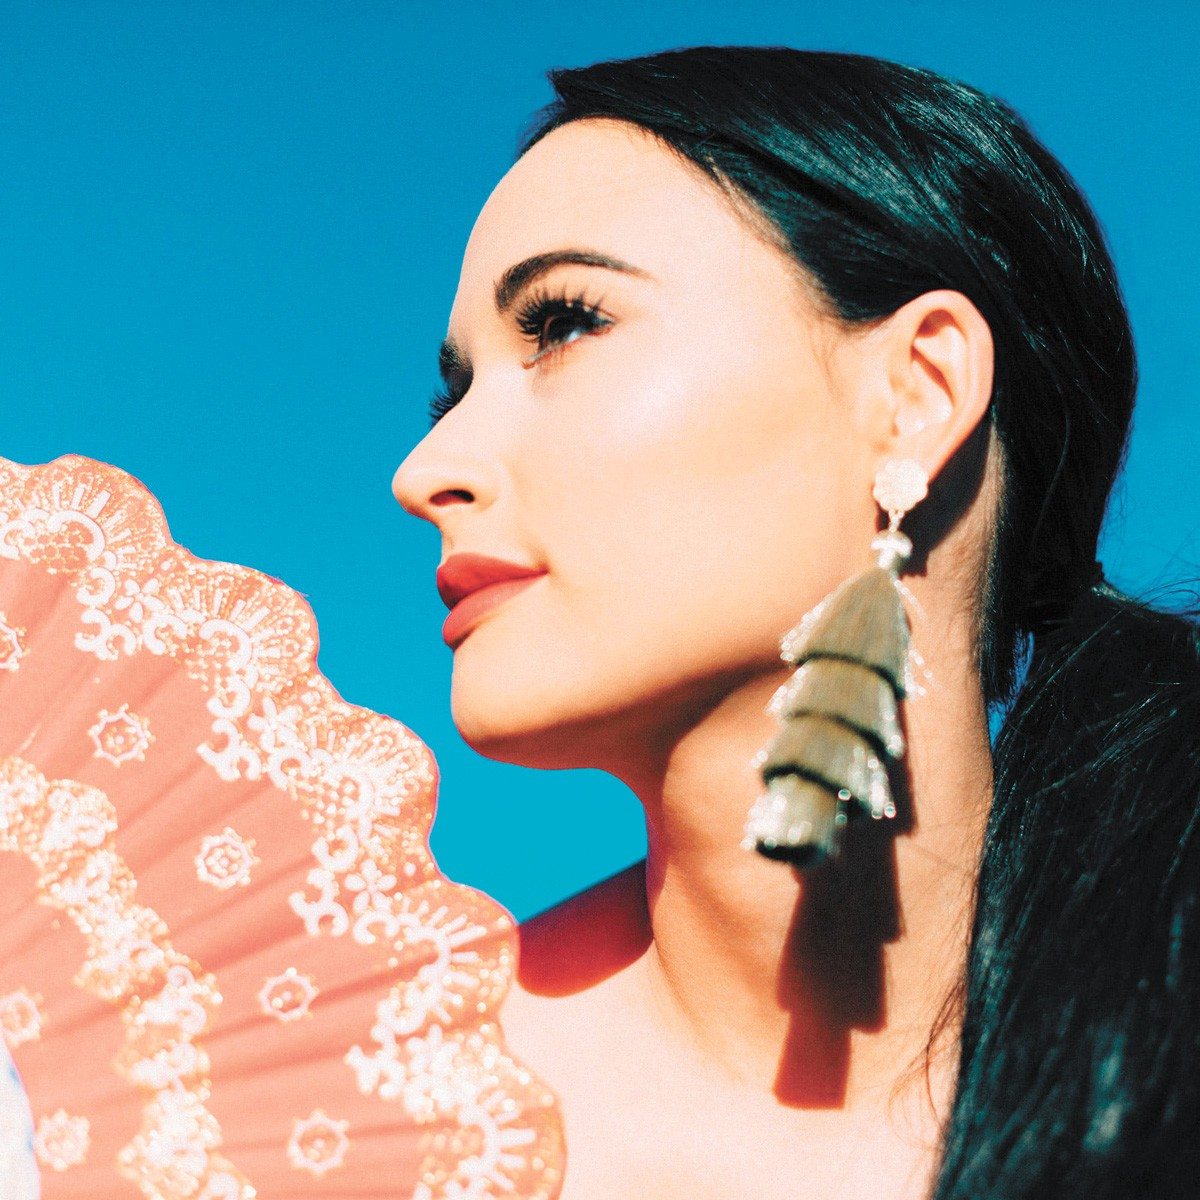 Kacey Musgraves delivered the author's fave album since 2017.